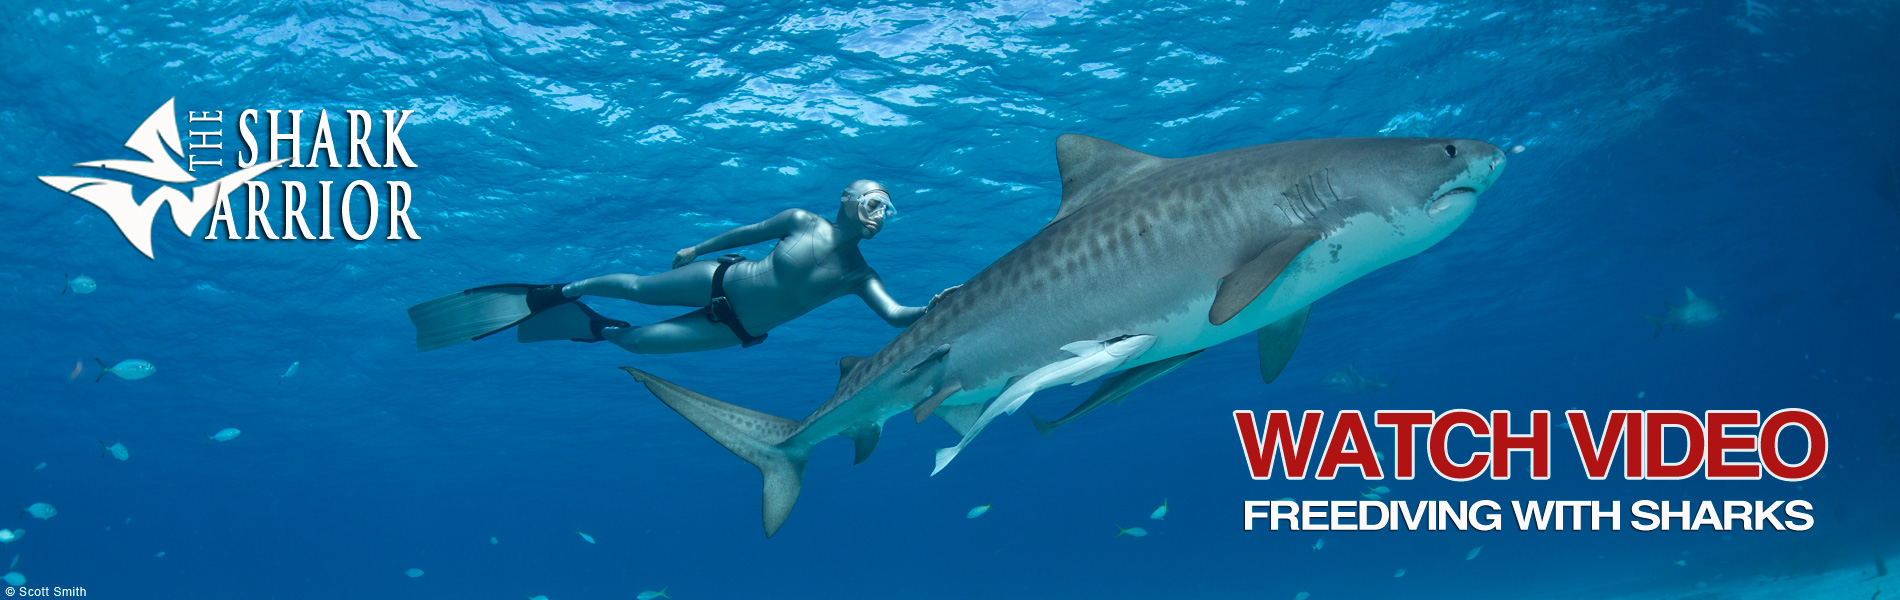 Lesley Rochat Freediving with Sharks